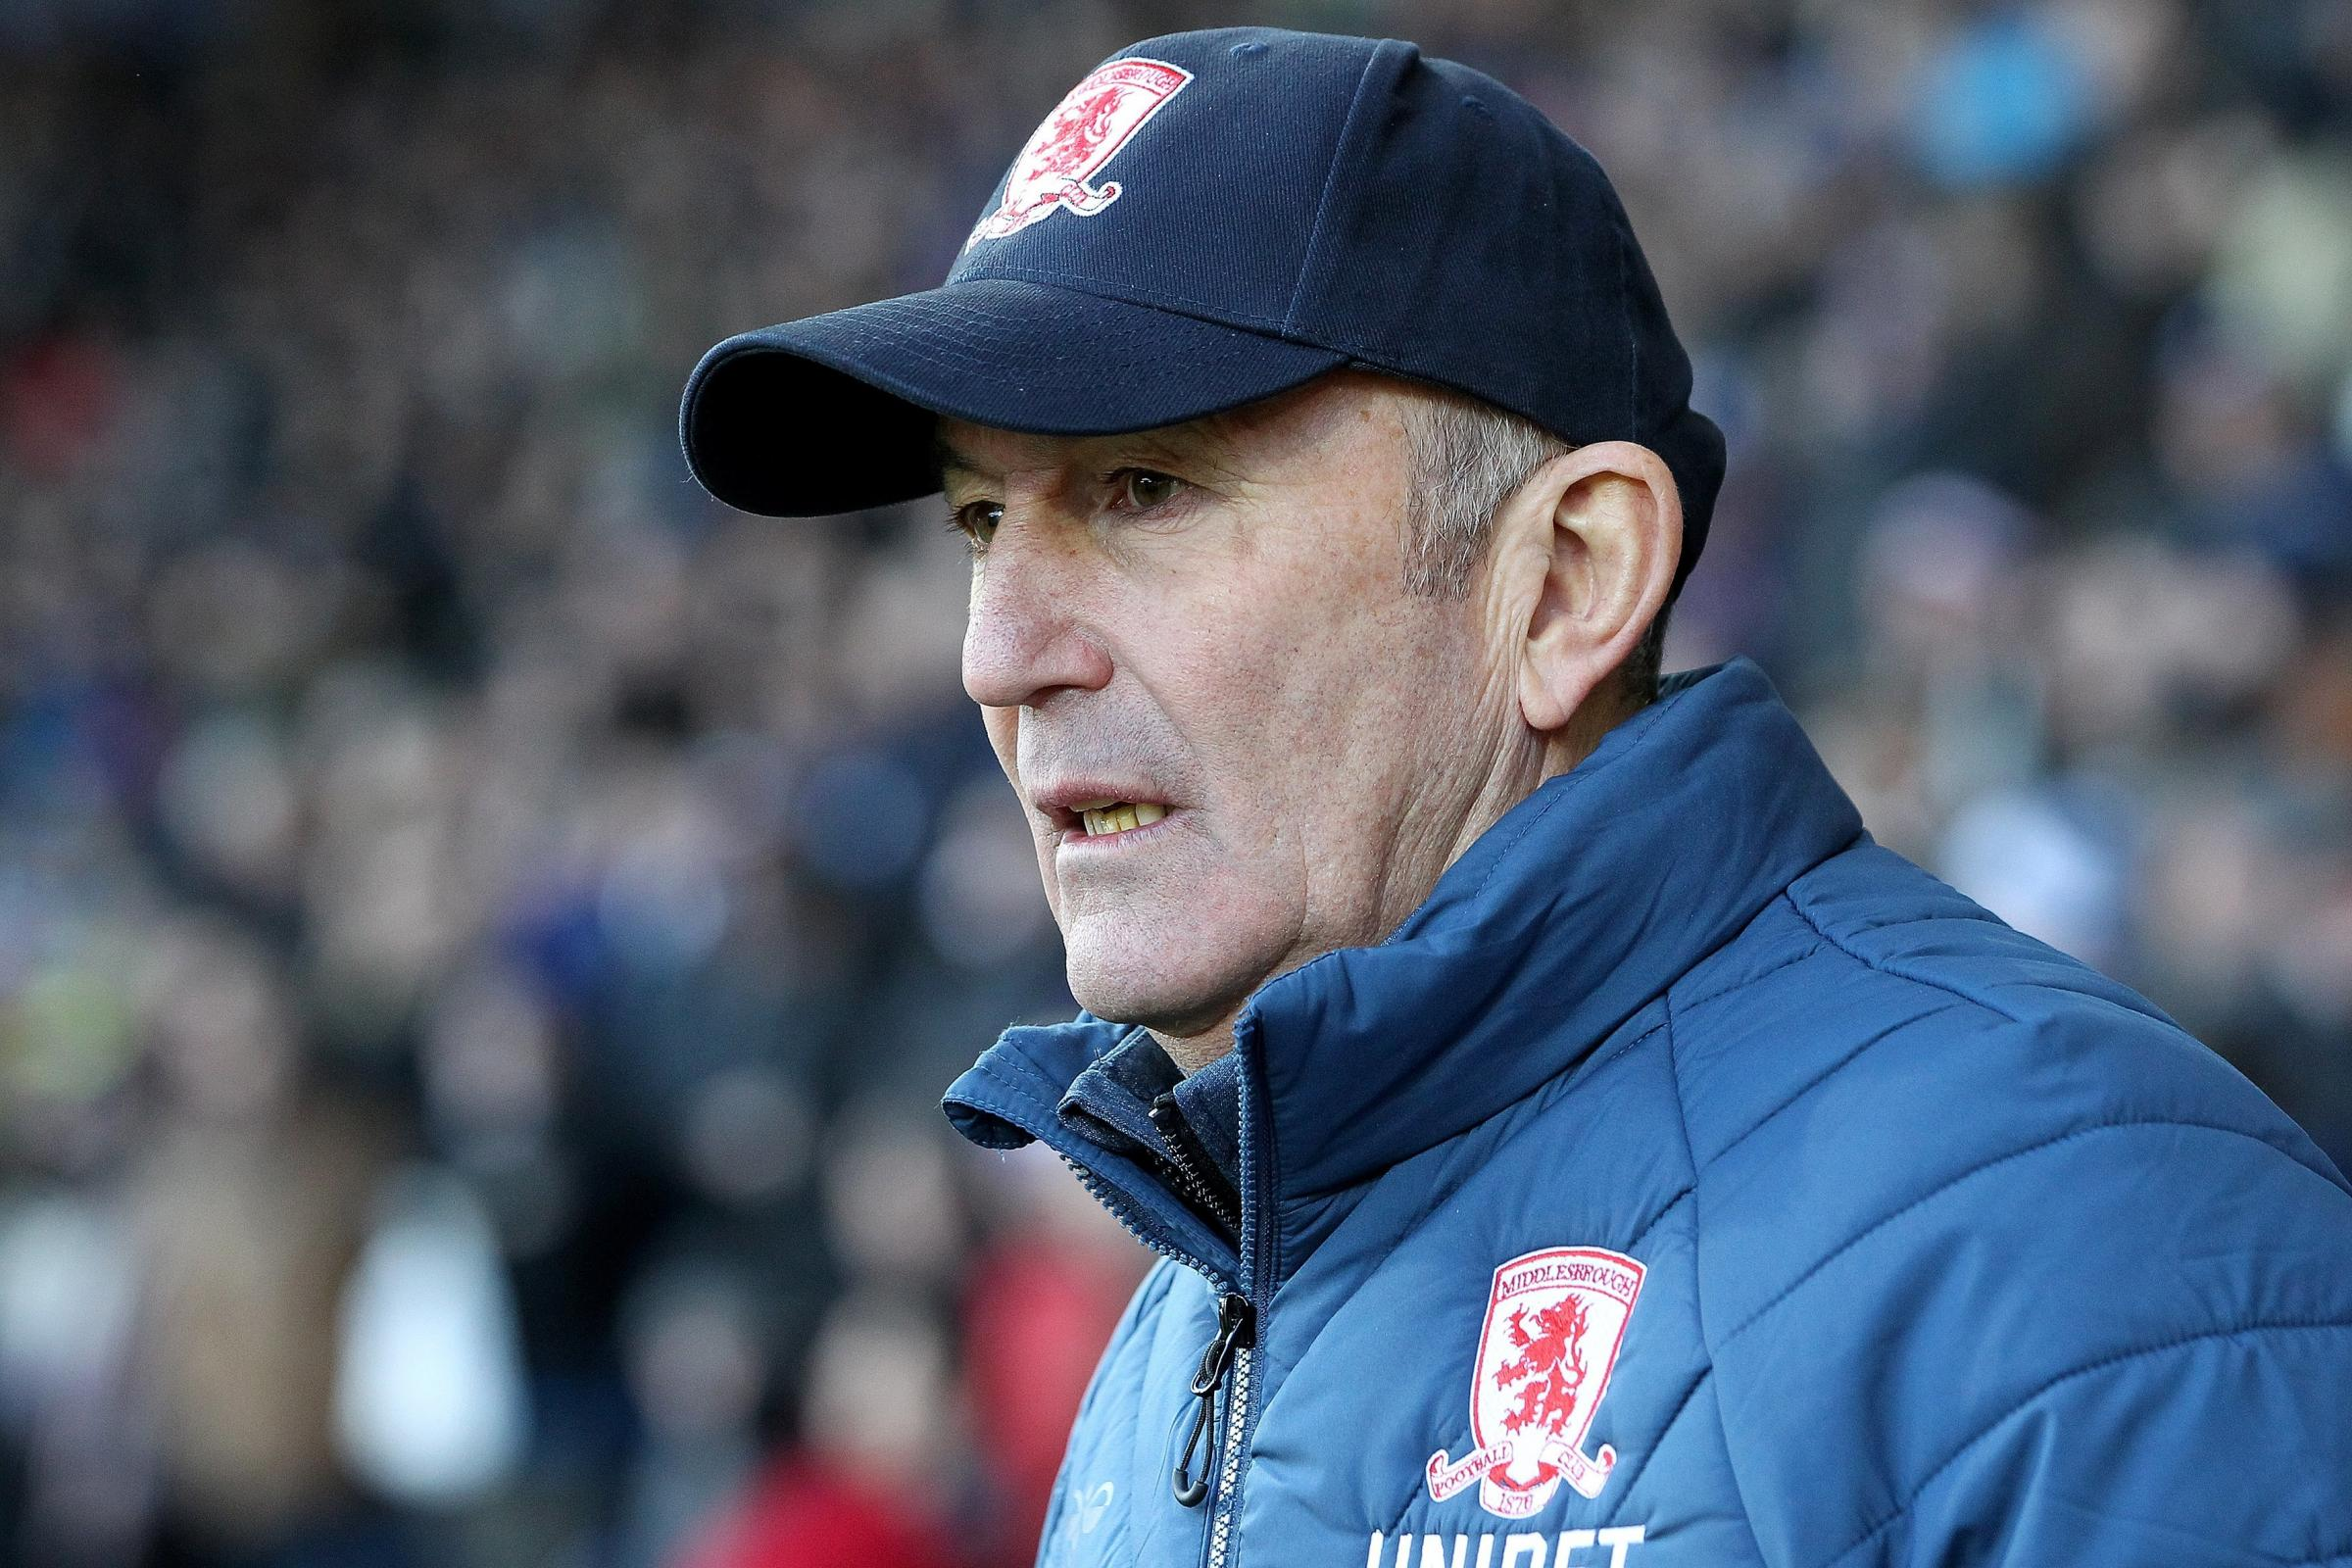 'SORTED THINGS OUT': Middlesbrough manager Tony Pulis